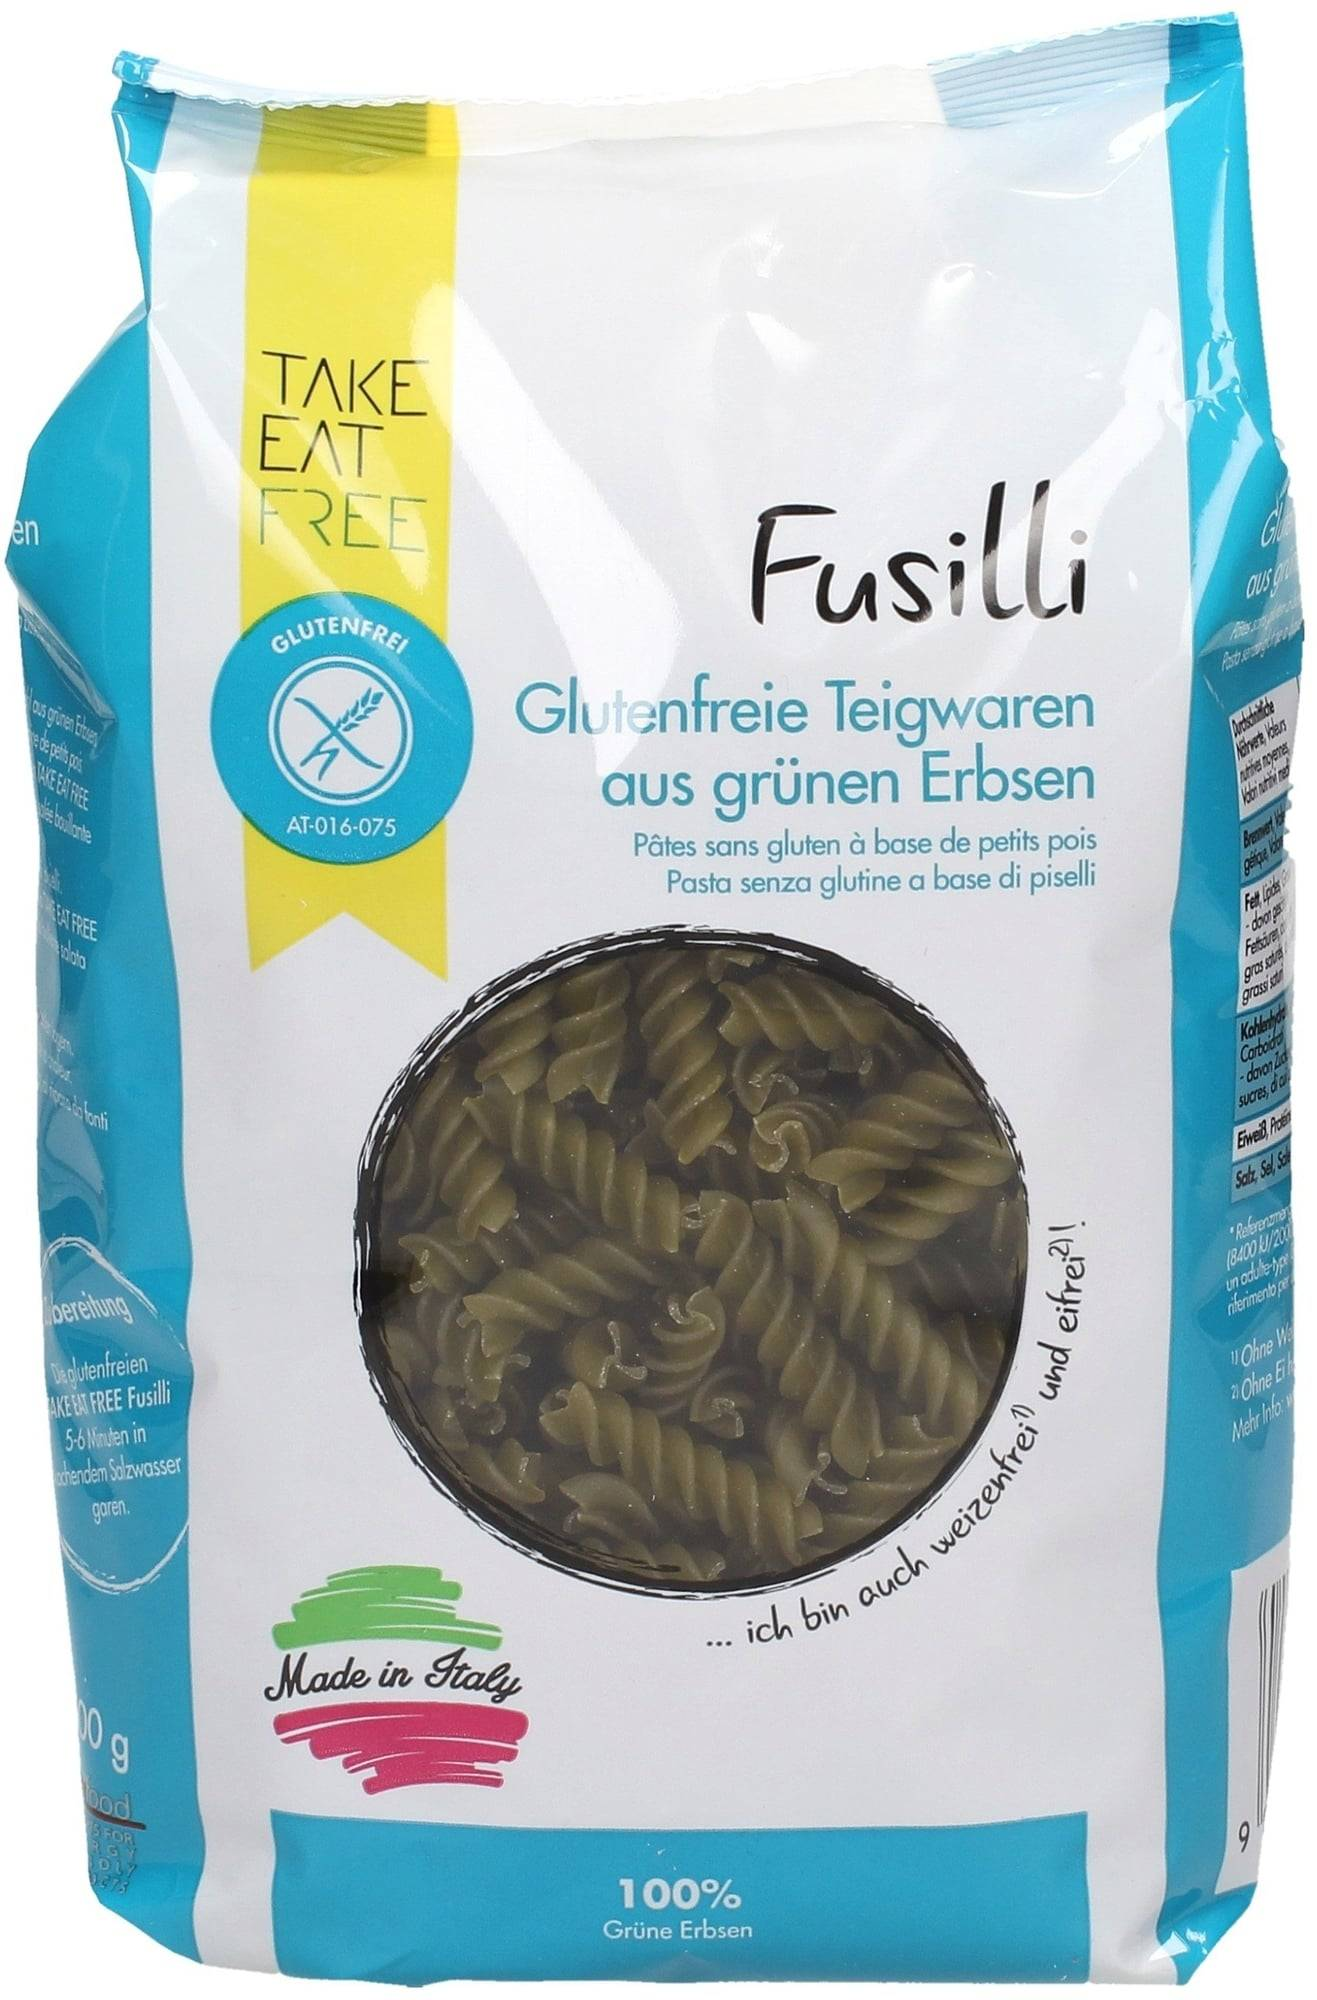 TAKE EAT FREE Fusillis Verts - 500 g